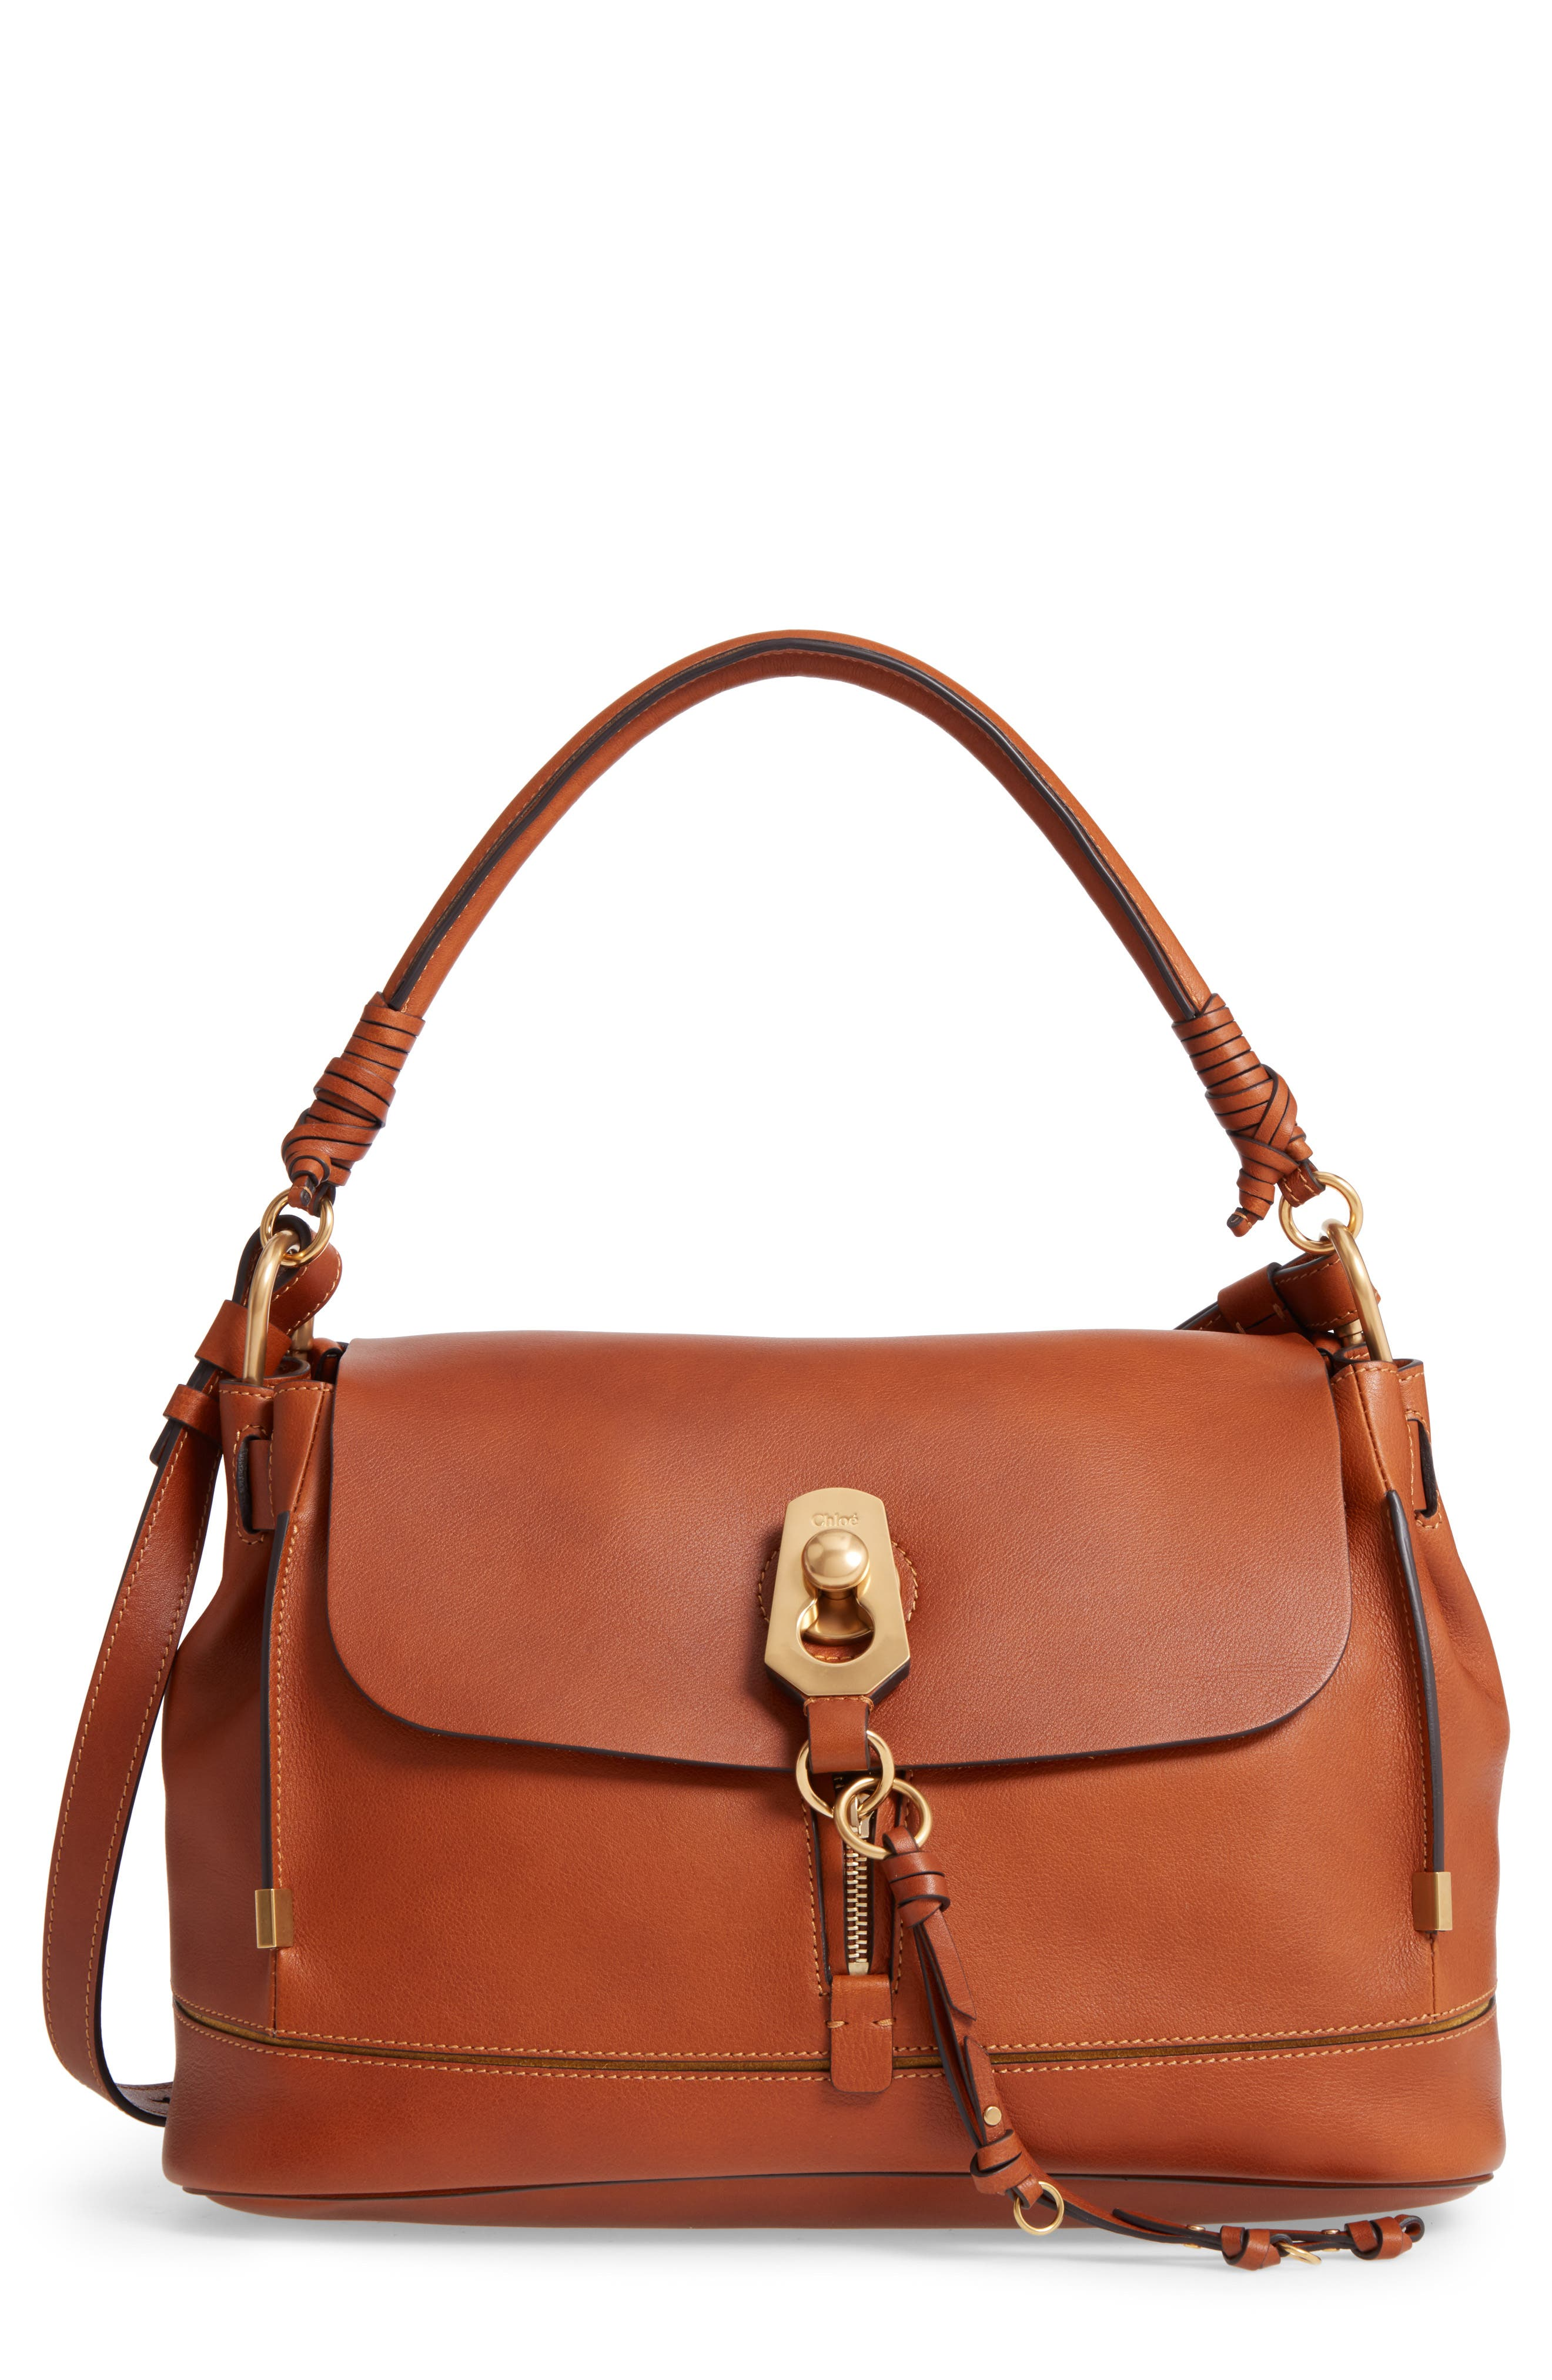 Main Image - Chloé Medium Owen Calfskin Leather Satchel